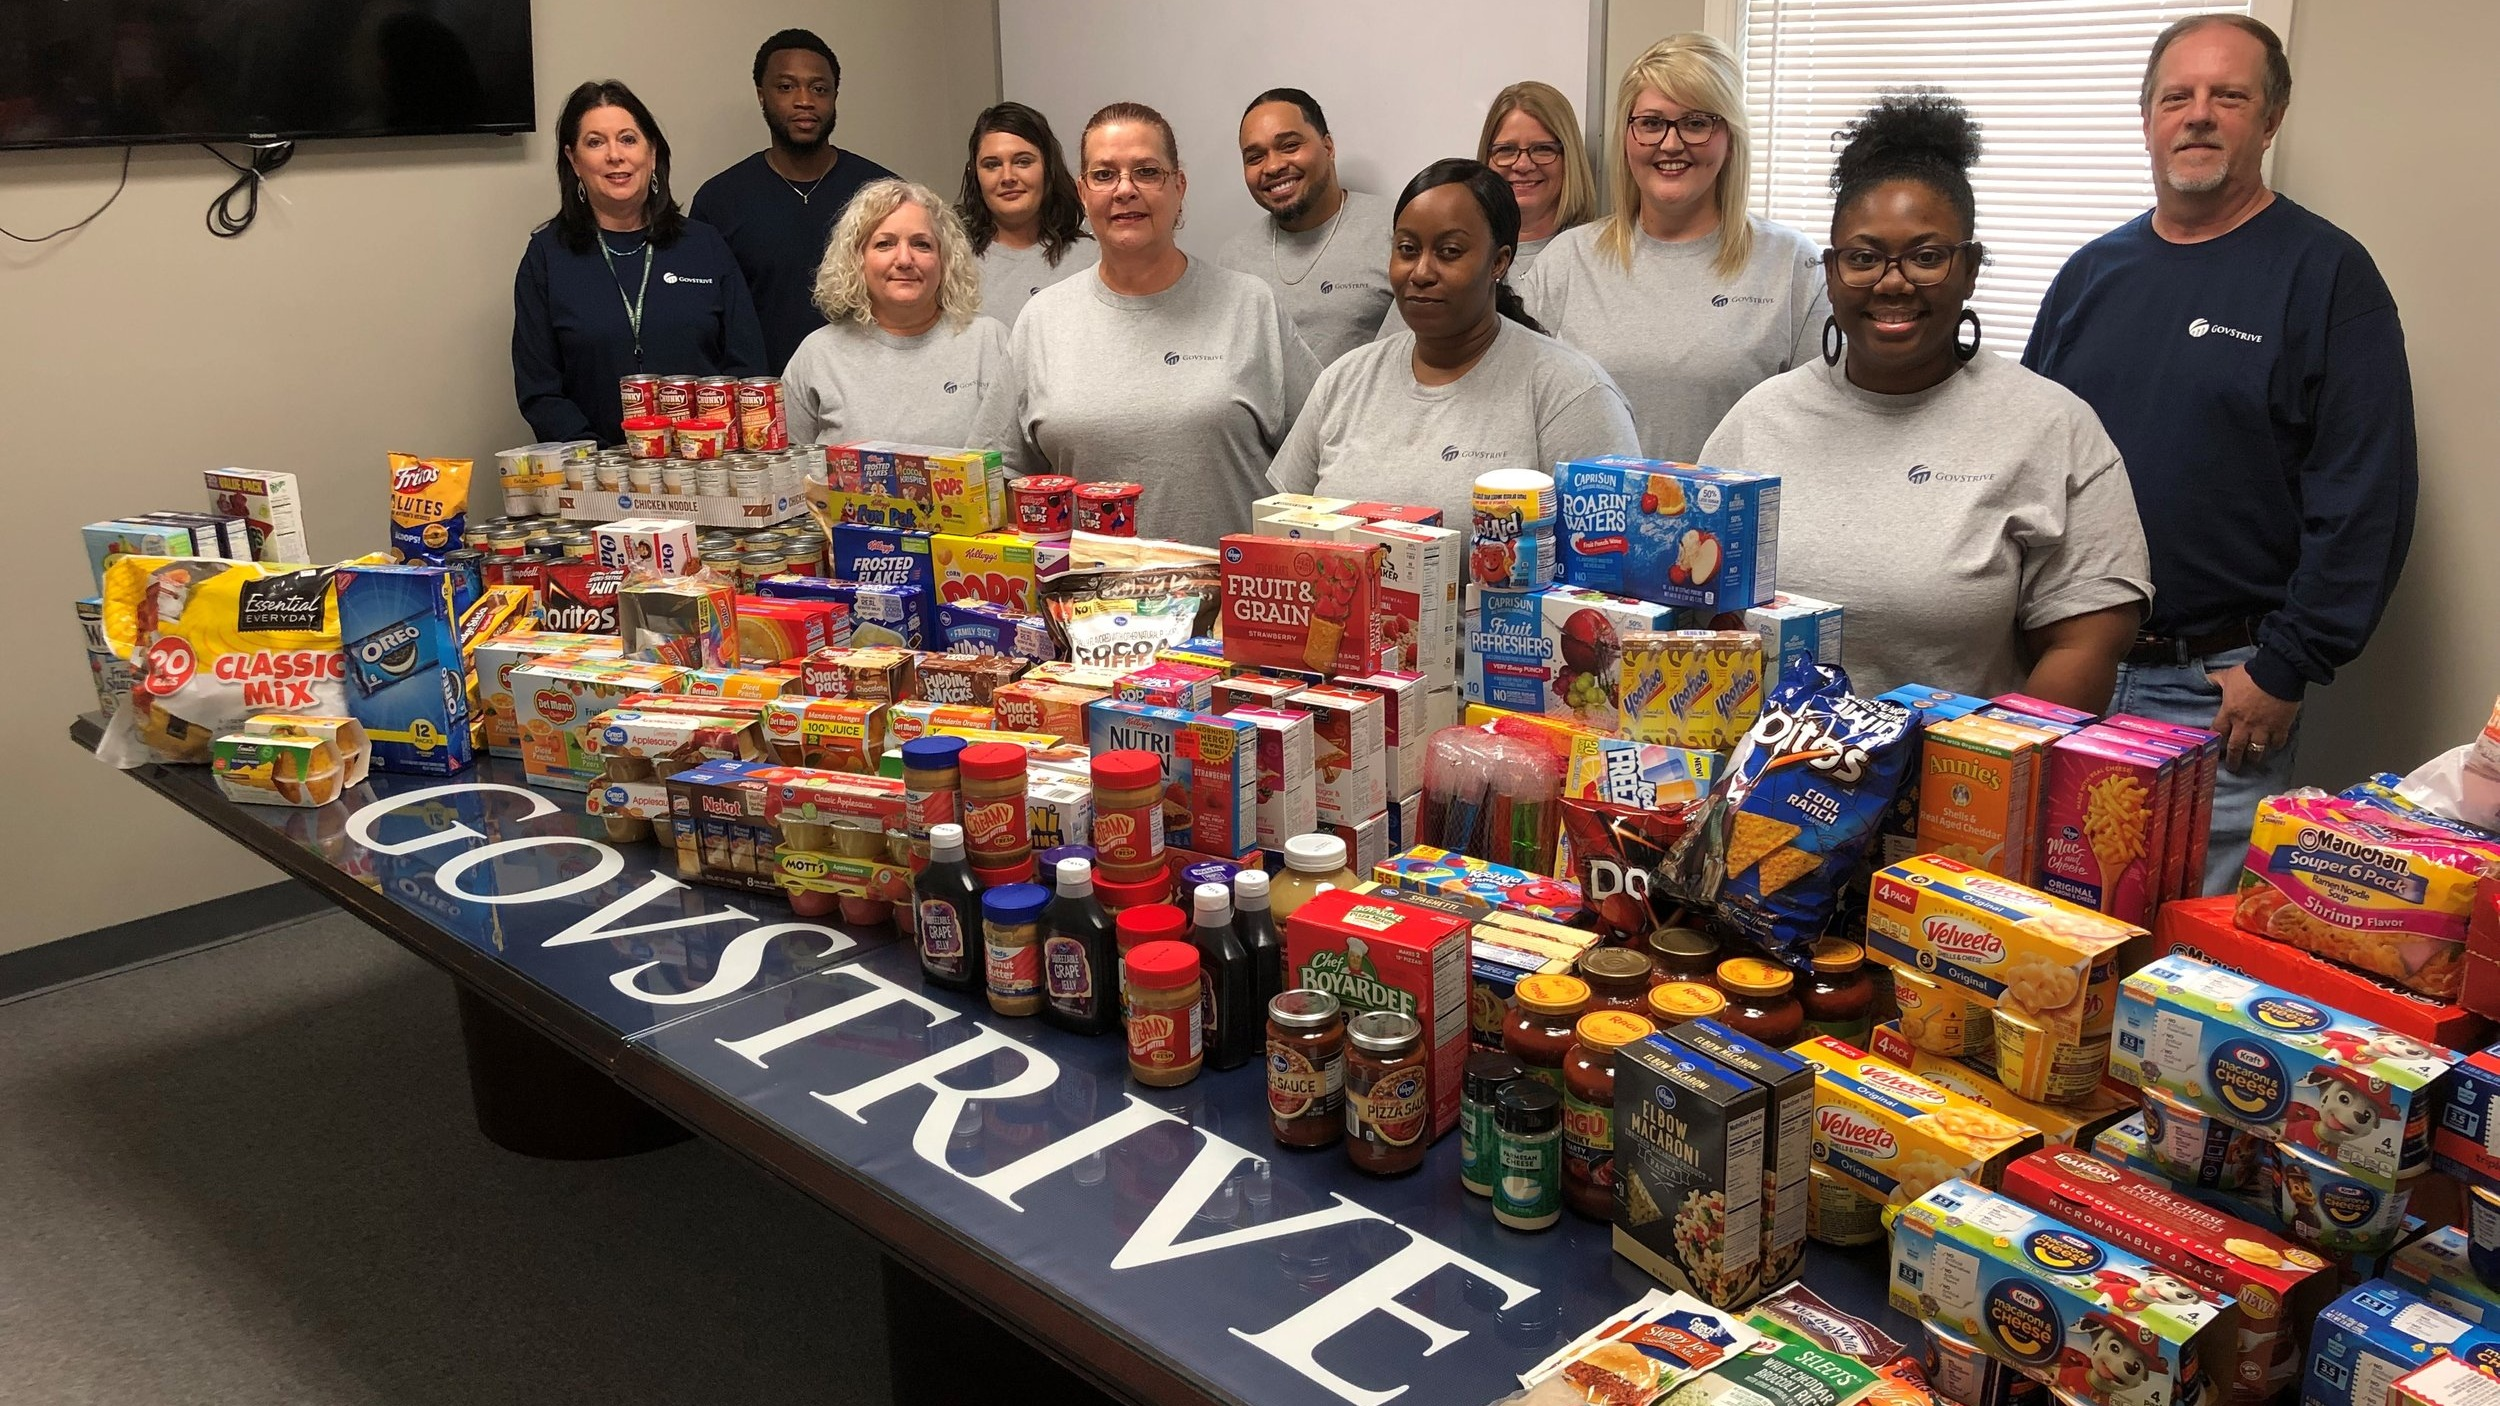 A picture of our Dublin team and the canned and dry food goods they collected for our community.